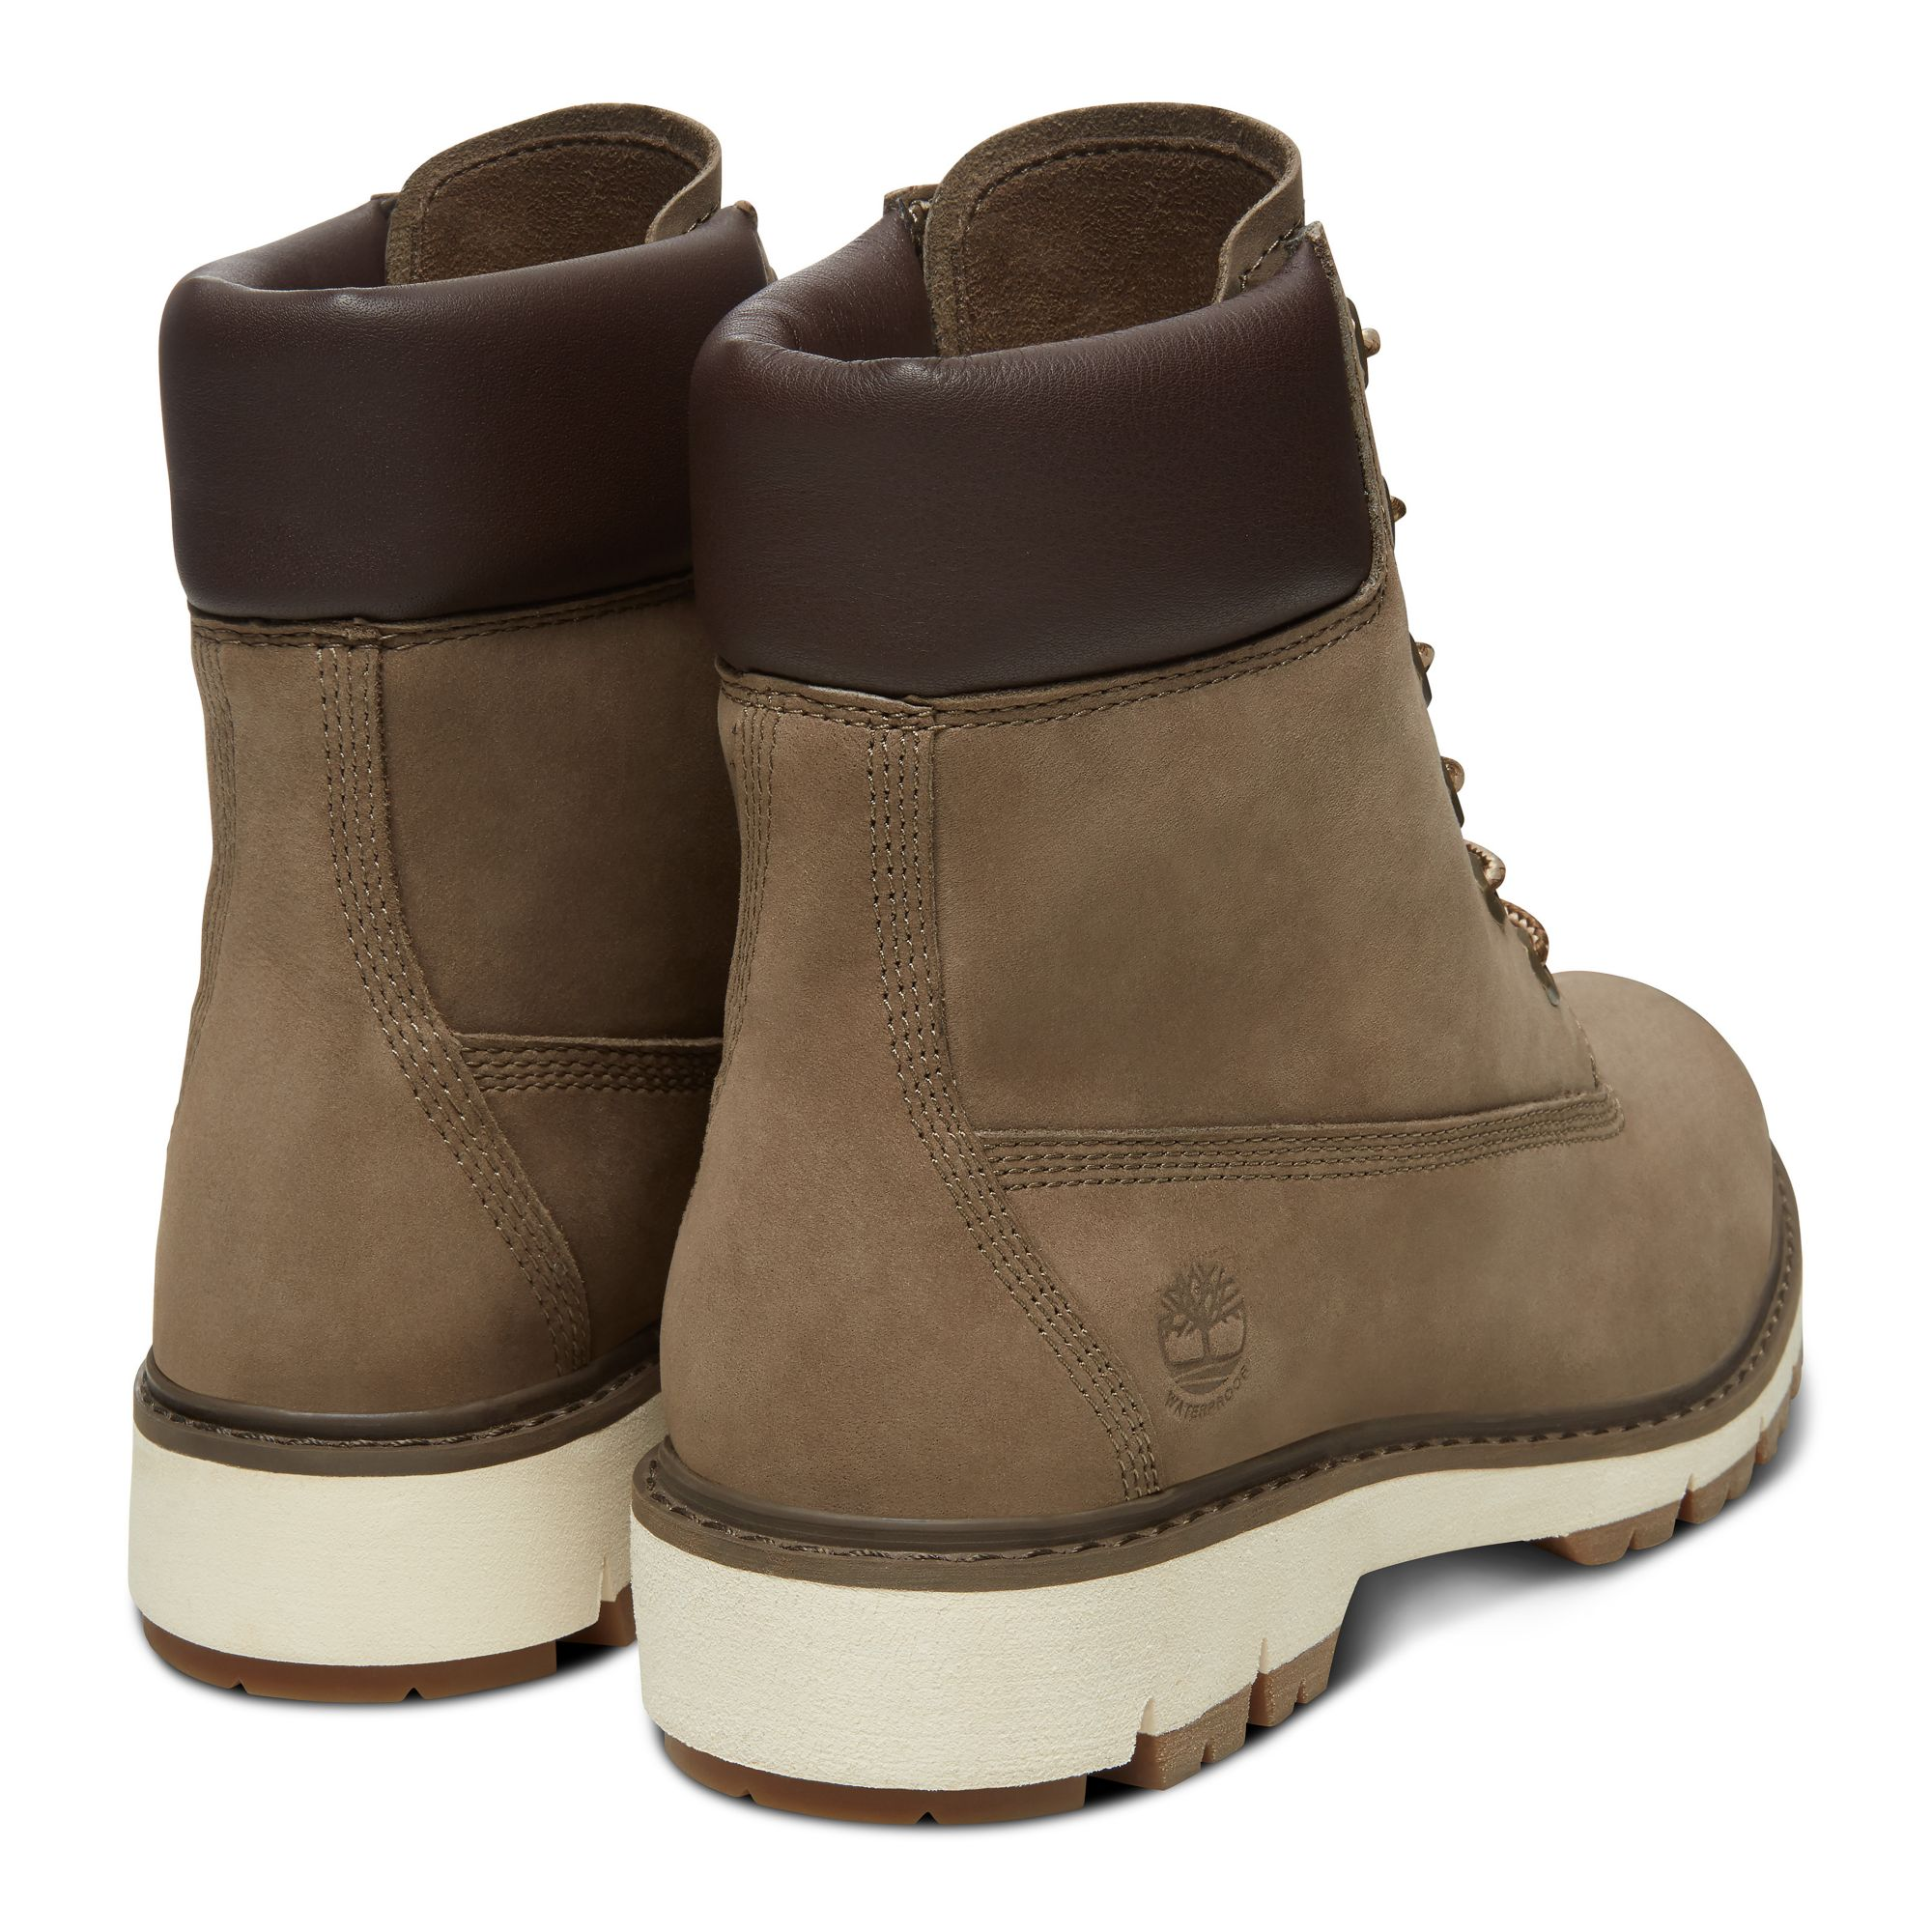 verenigde staten korting beste plaats Timberland Lucia Way 6 Inch Boot for Women in Greige at £165 ...